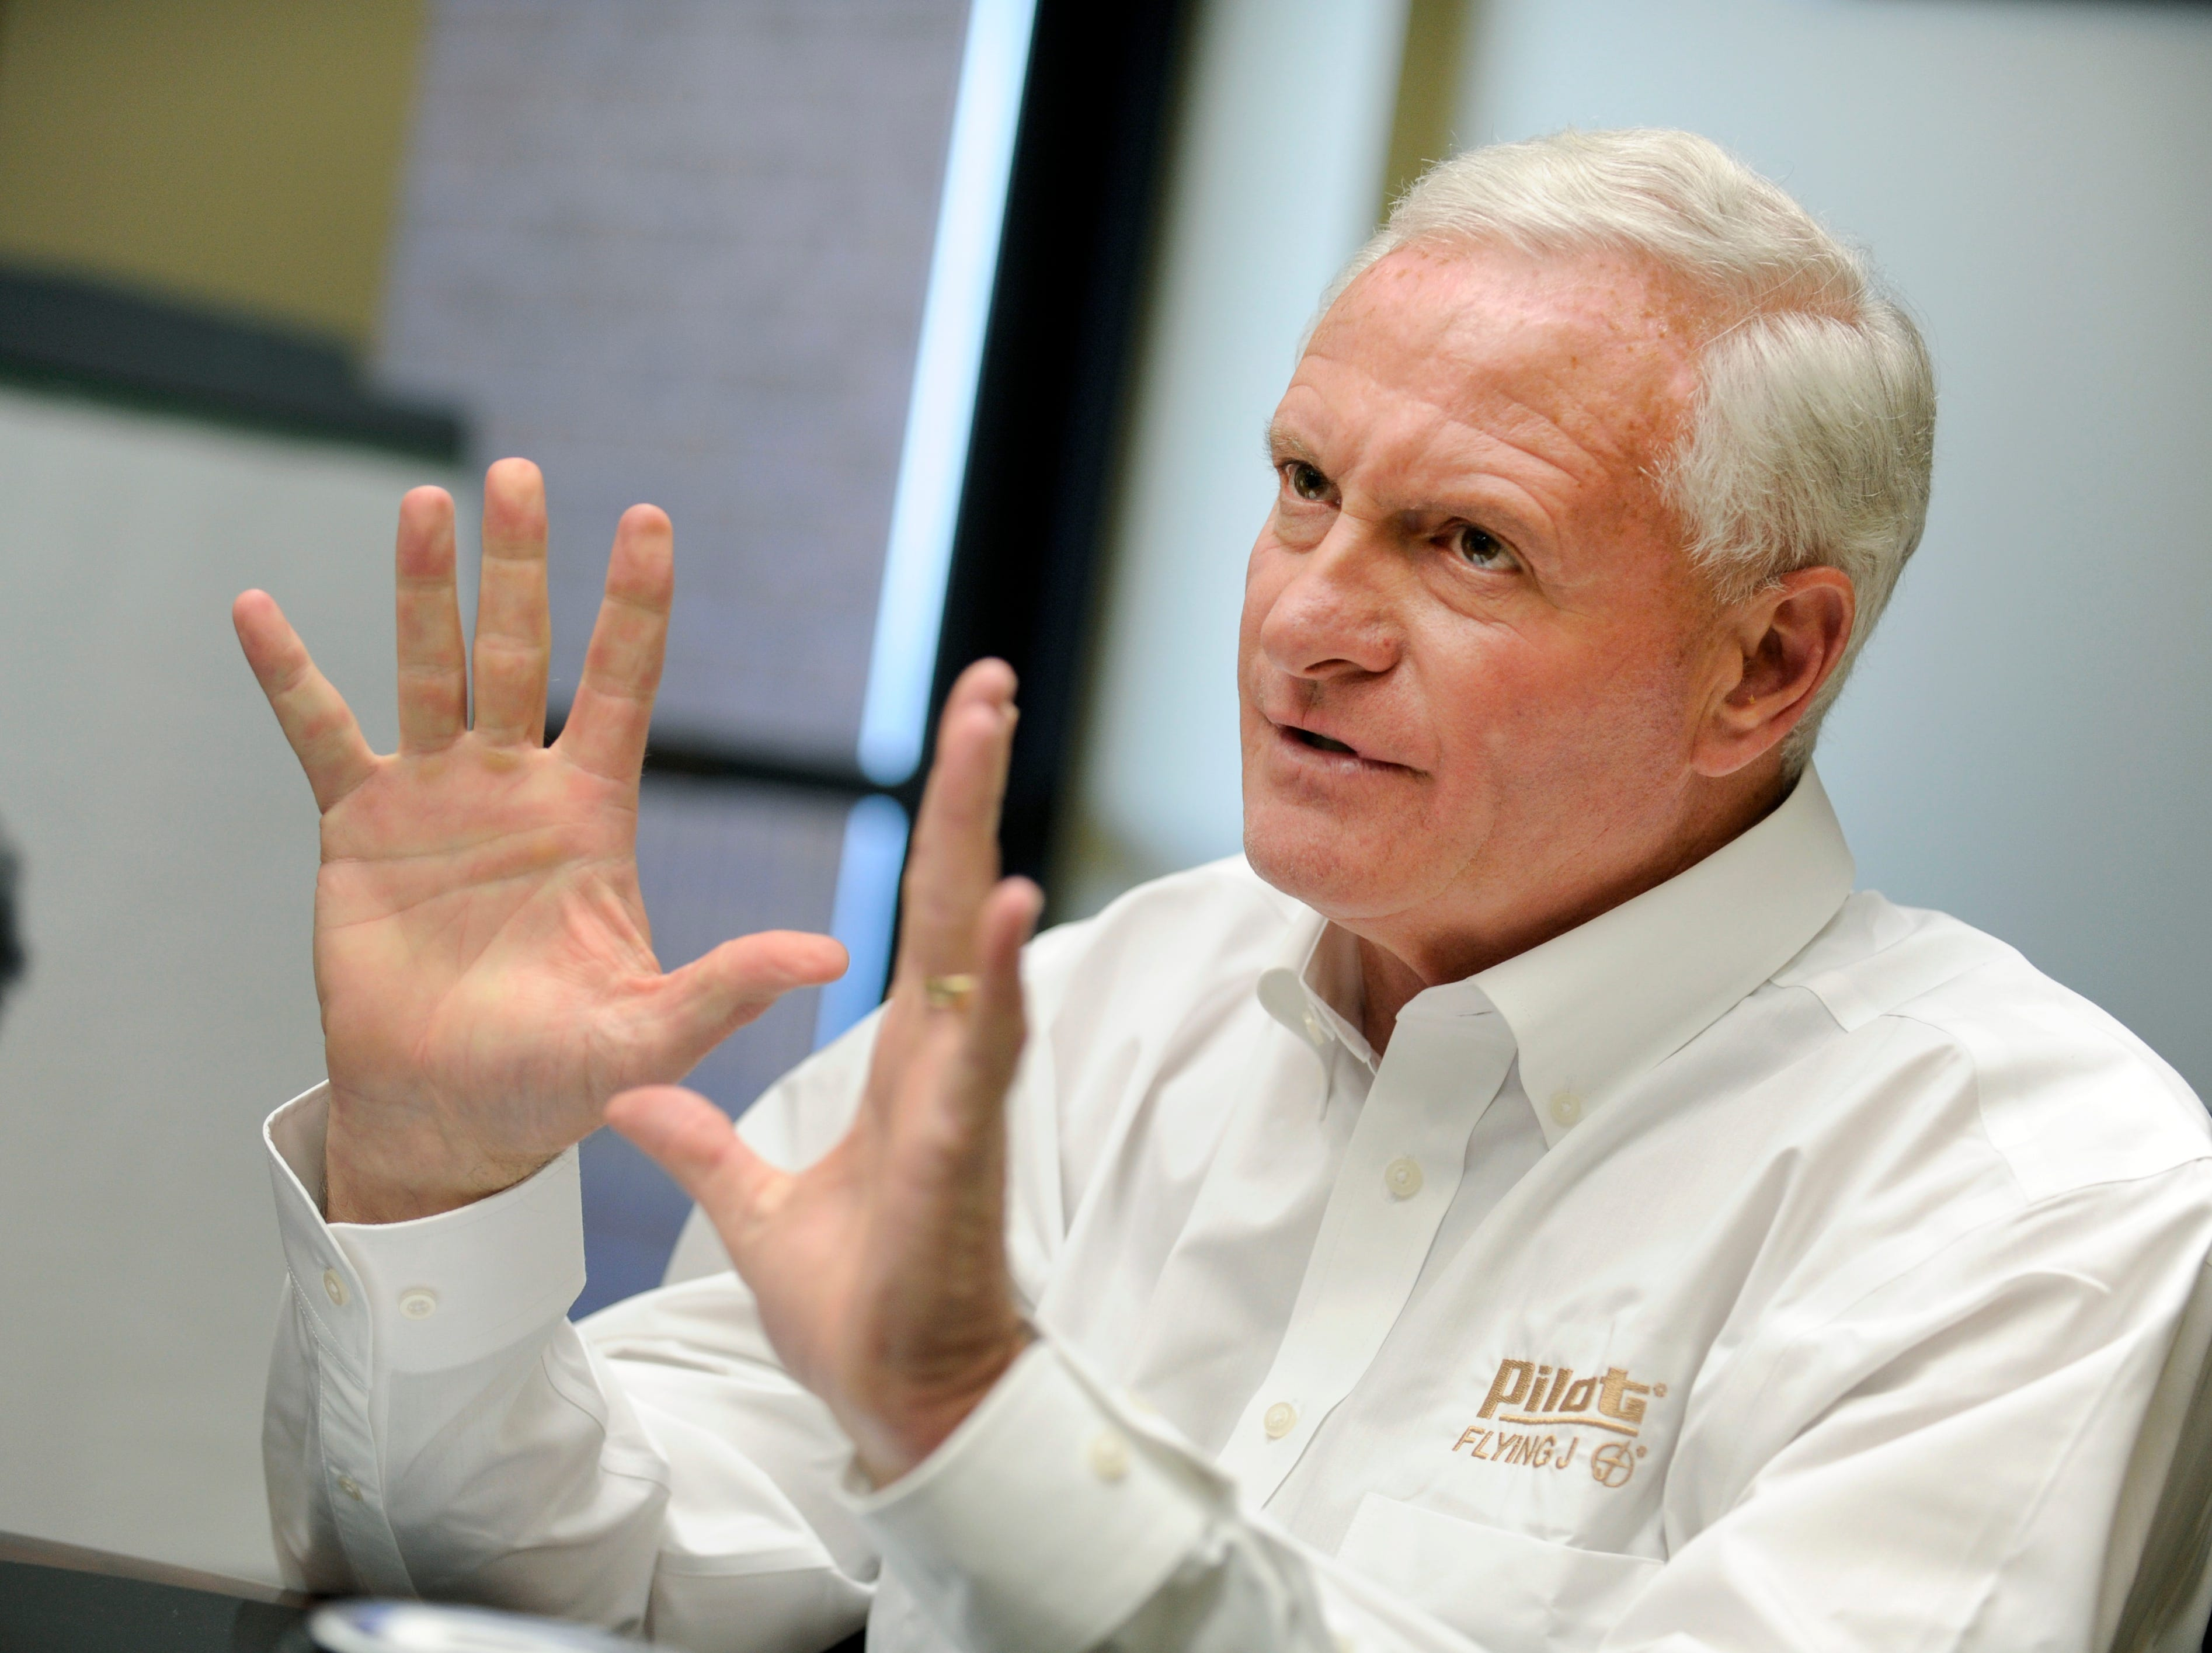 Pilot Flying J CEO Jimmy Haslam during a press conference Monday, Apr. 22, 2013 in the boardroom at their Knoxville headquarters .